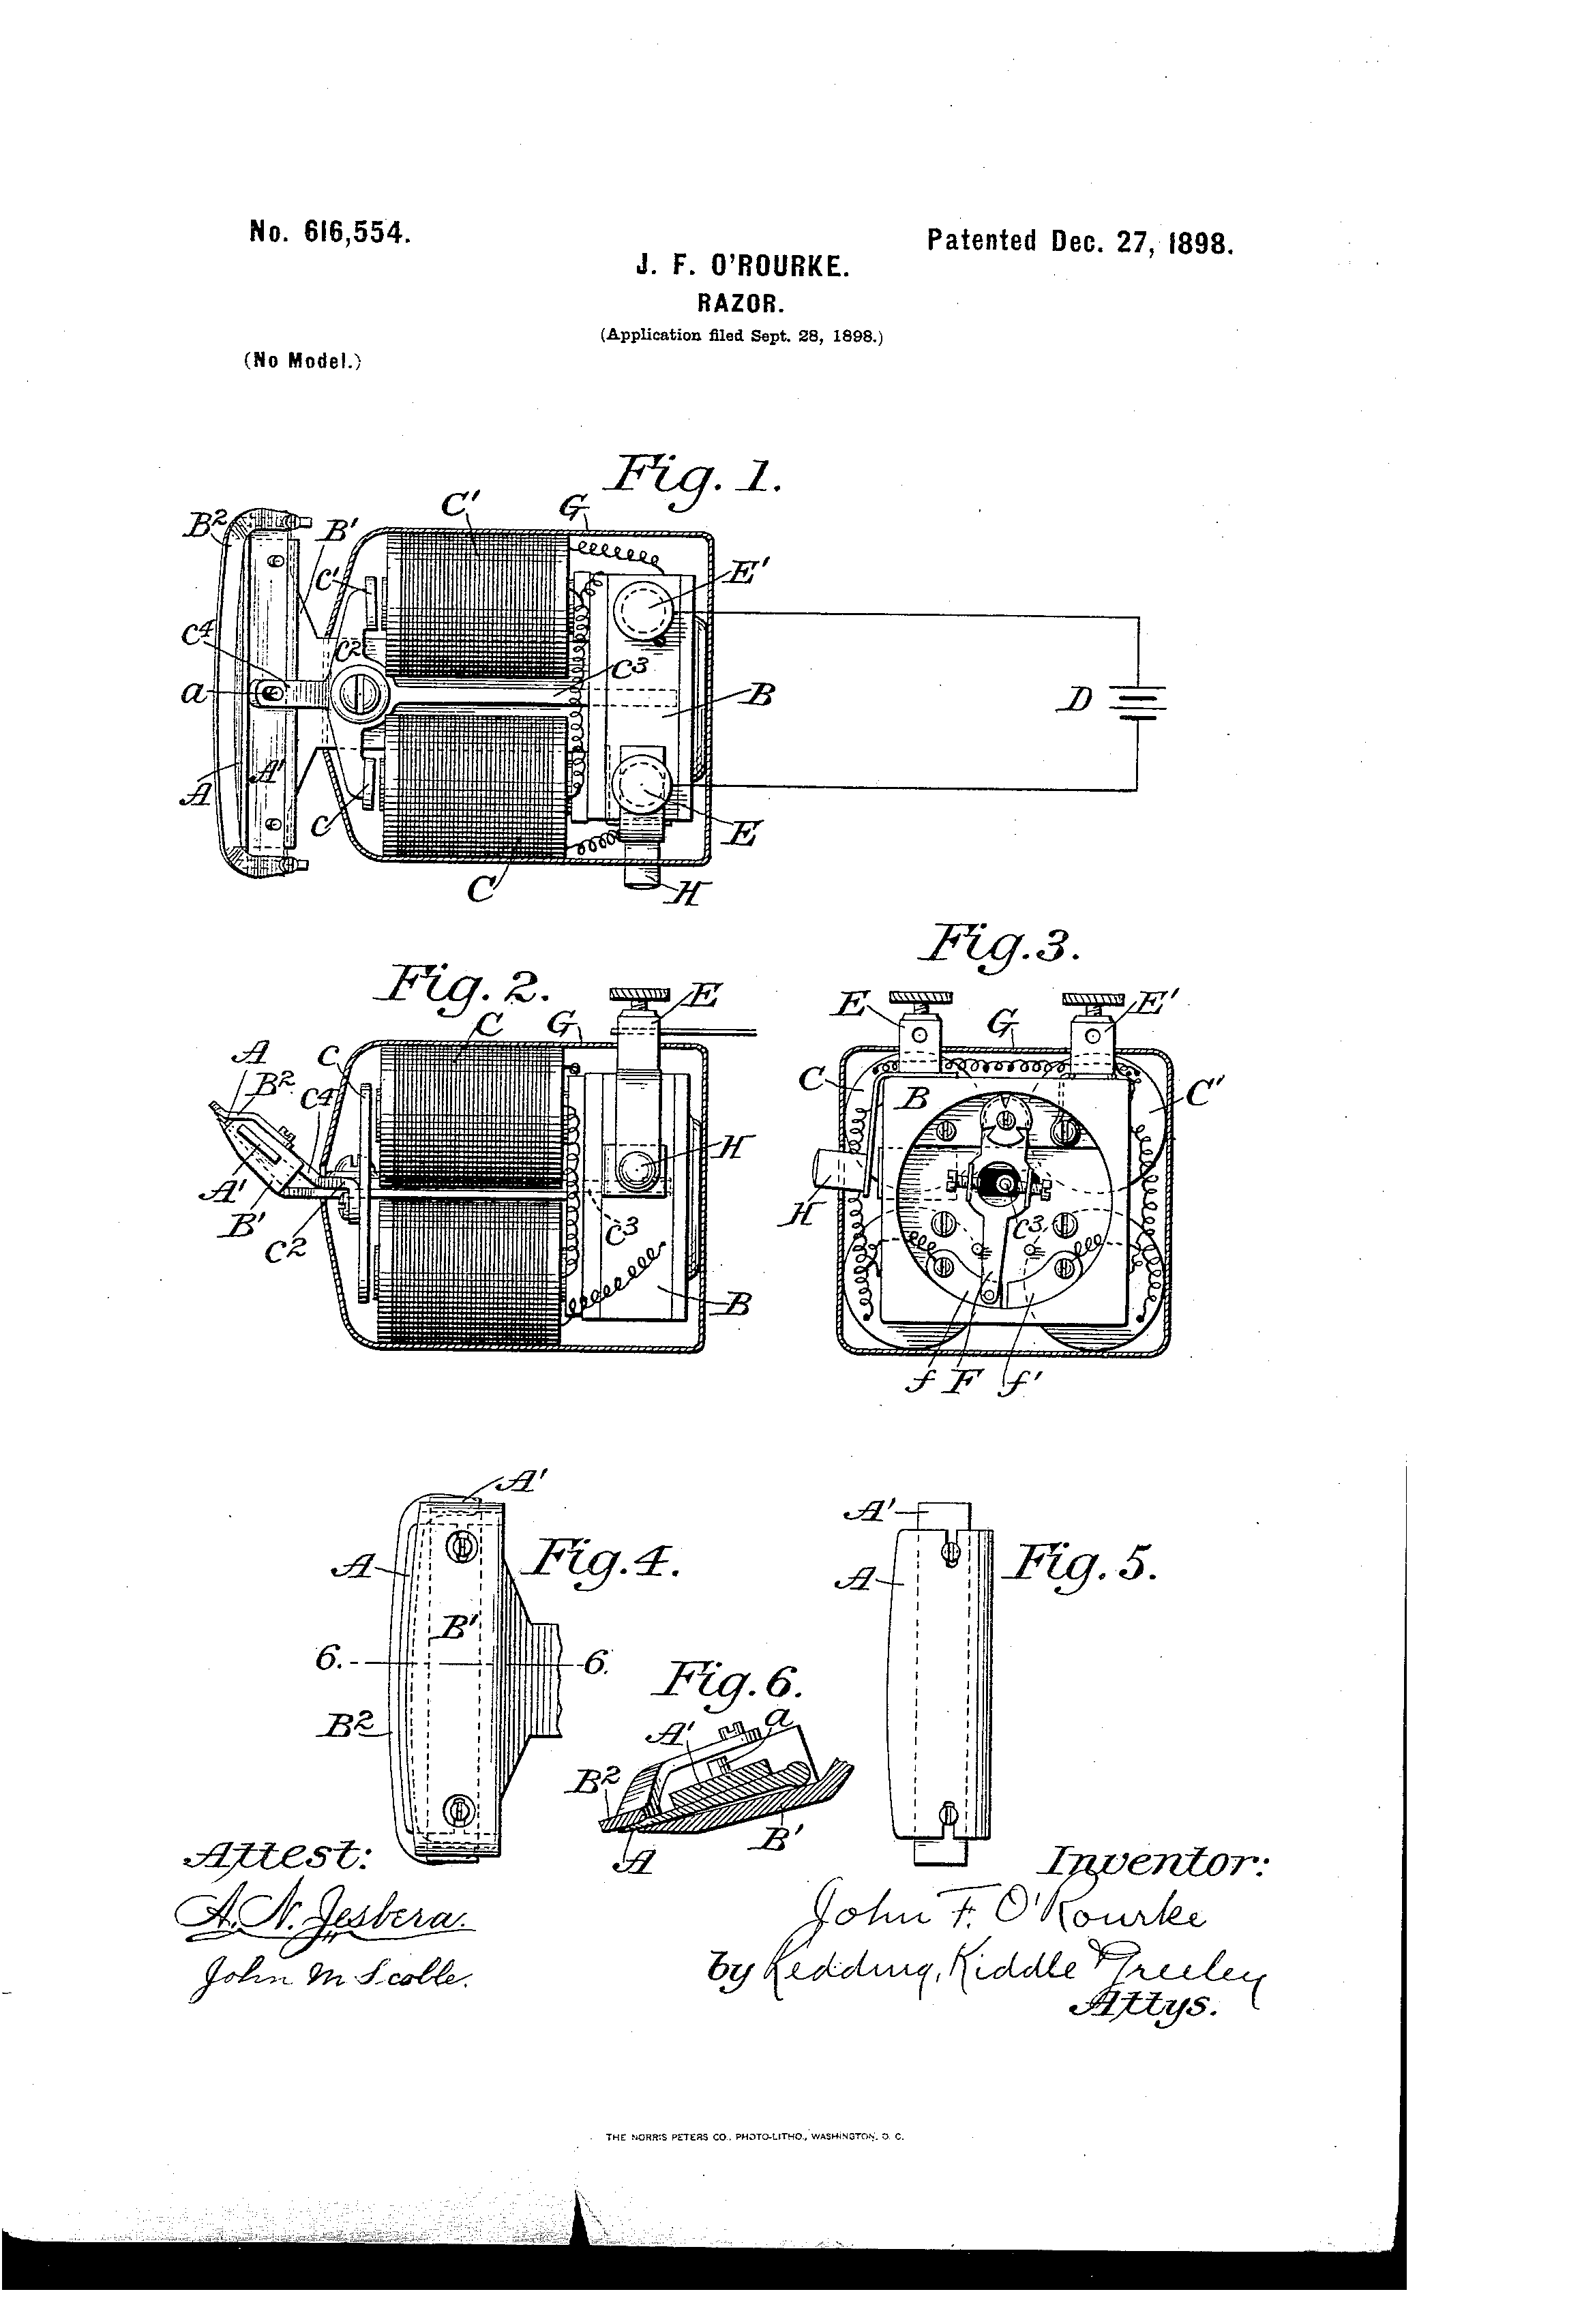 US616554 patent drawings